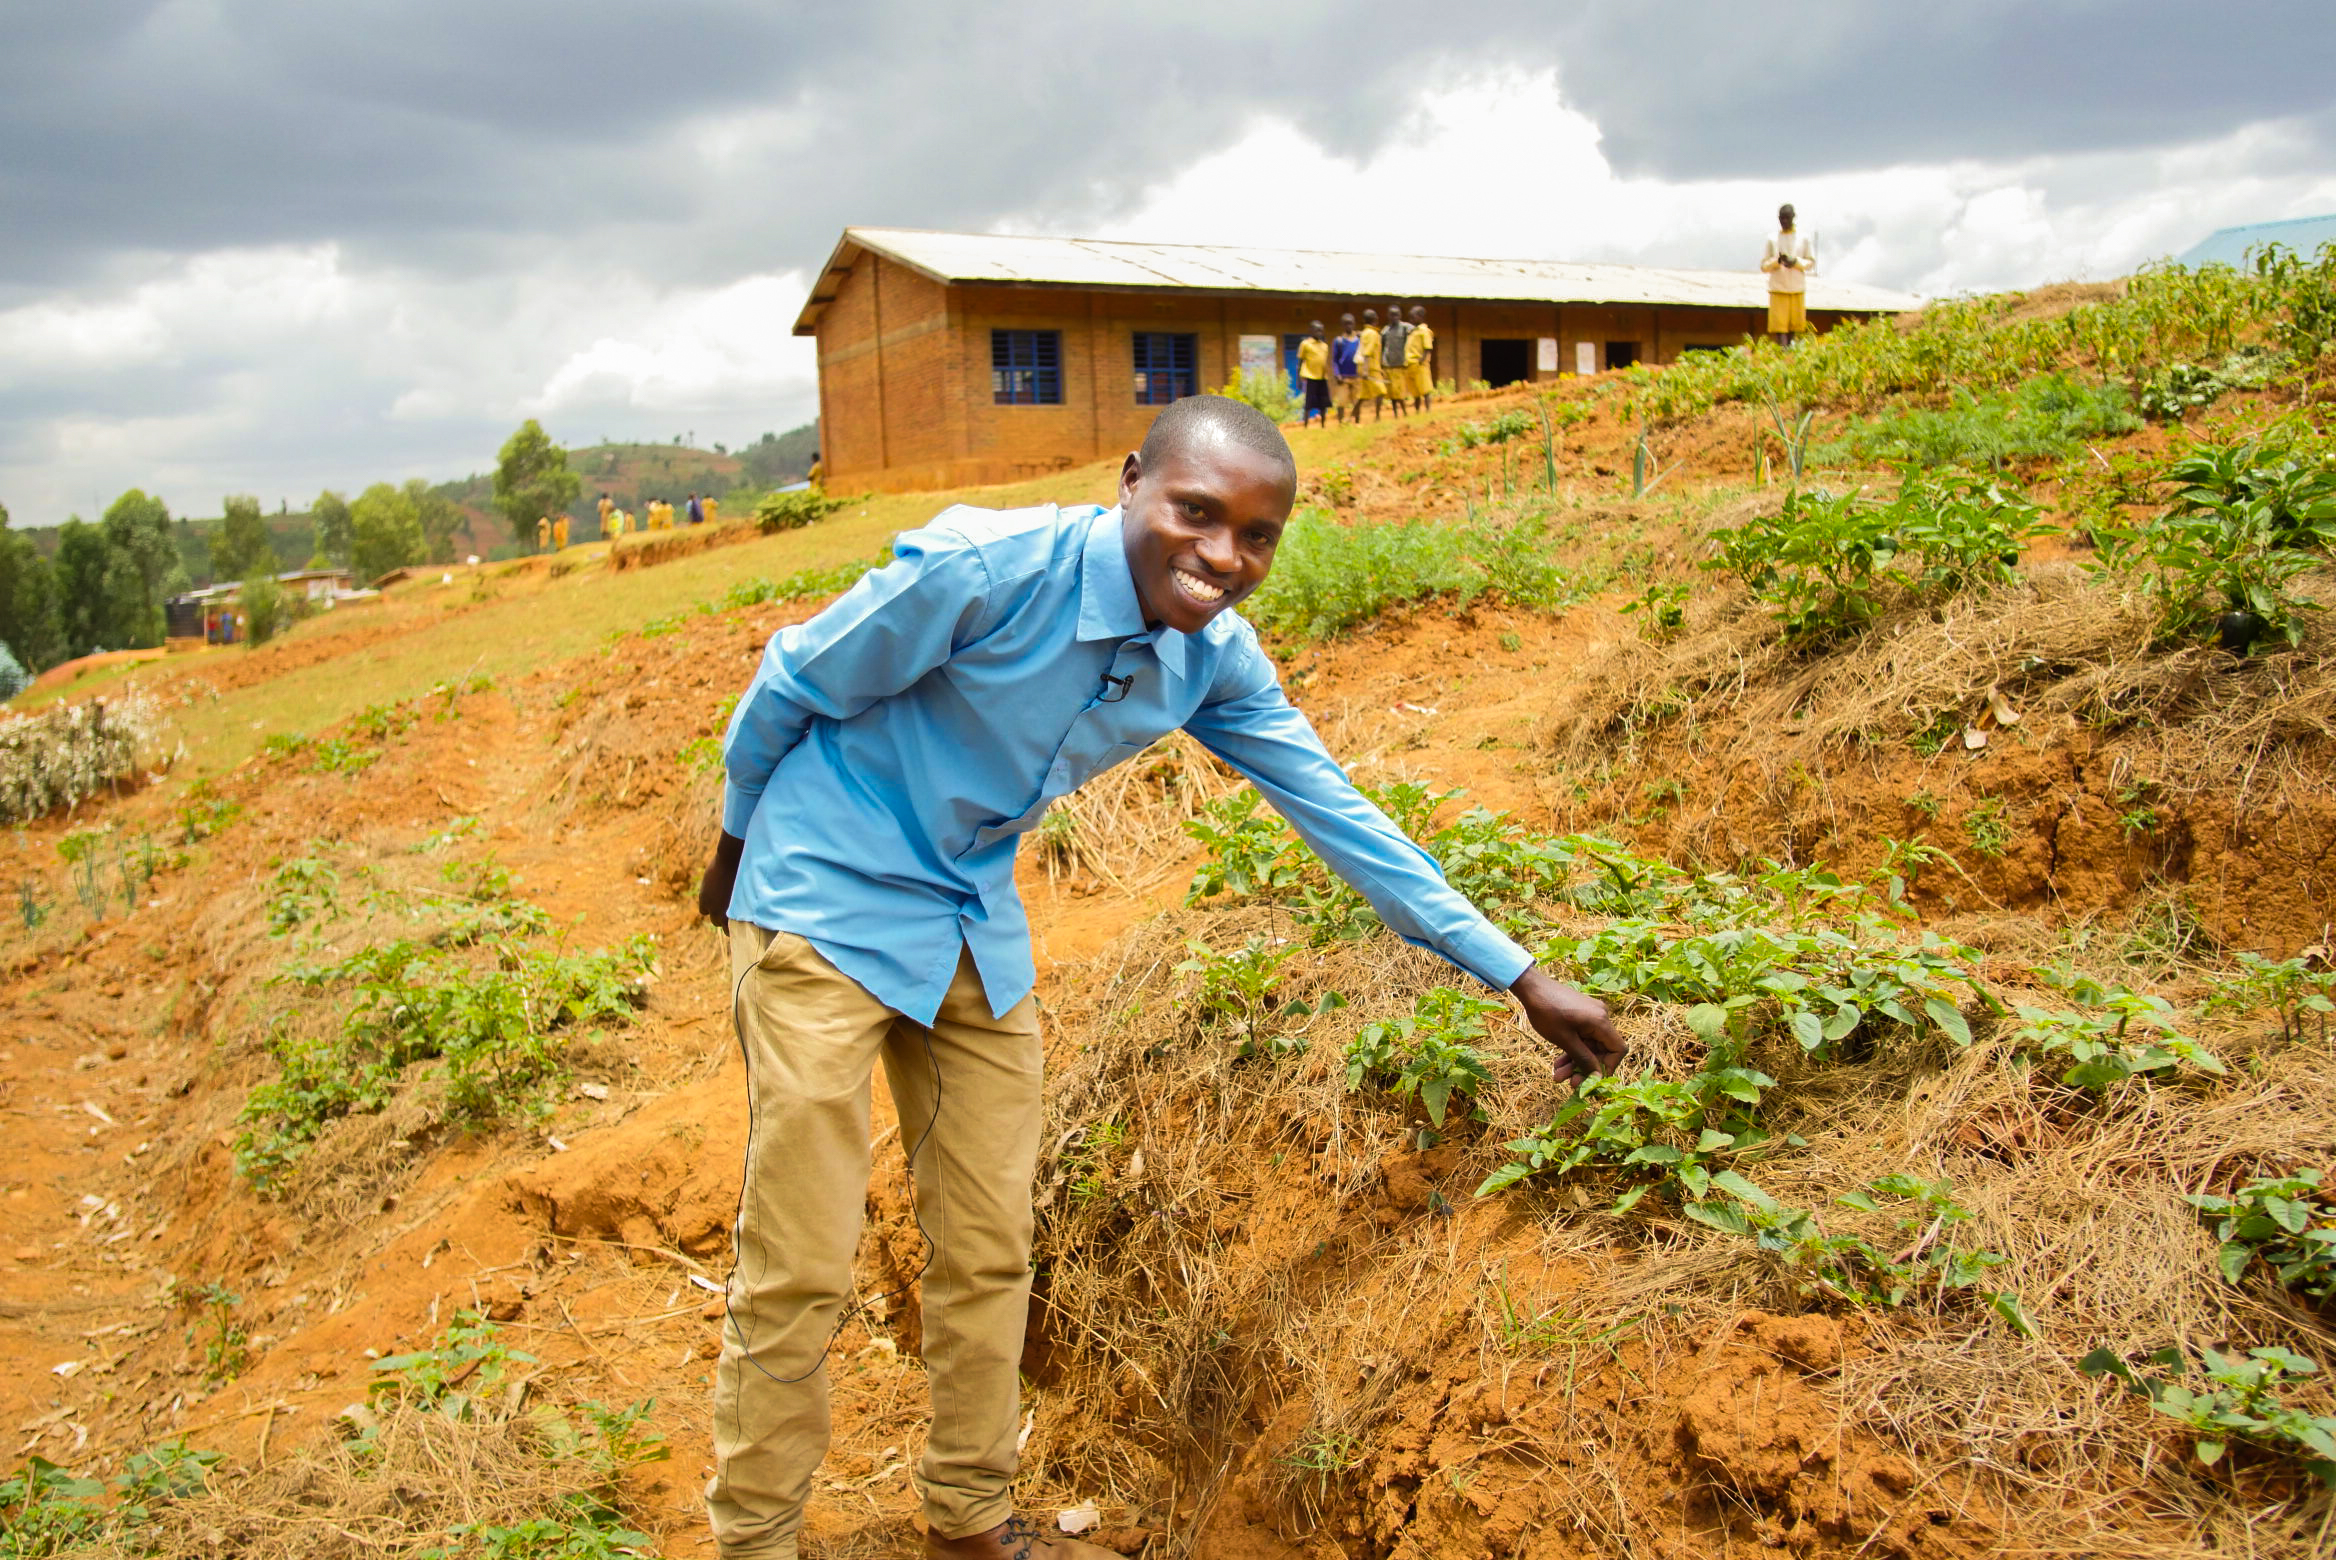 Placide proudly shows off his school's new vegetable garden, where fresh vegetables are starting to ripen.